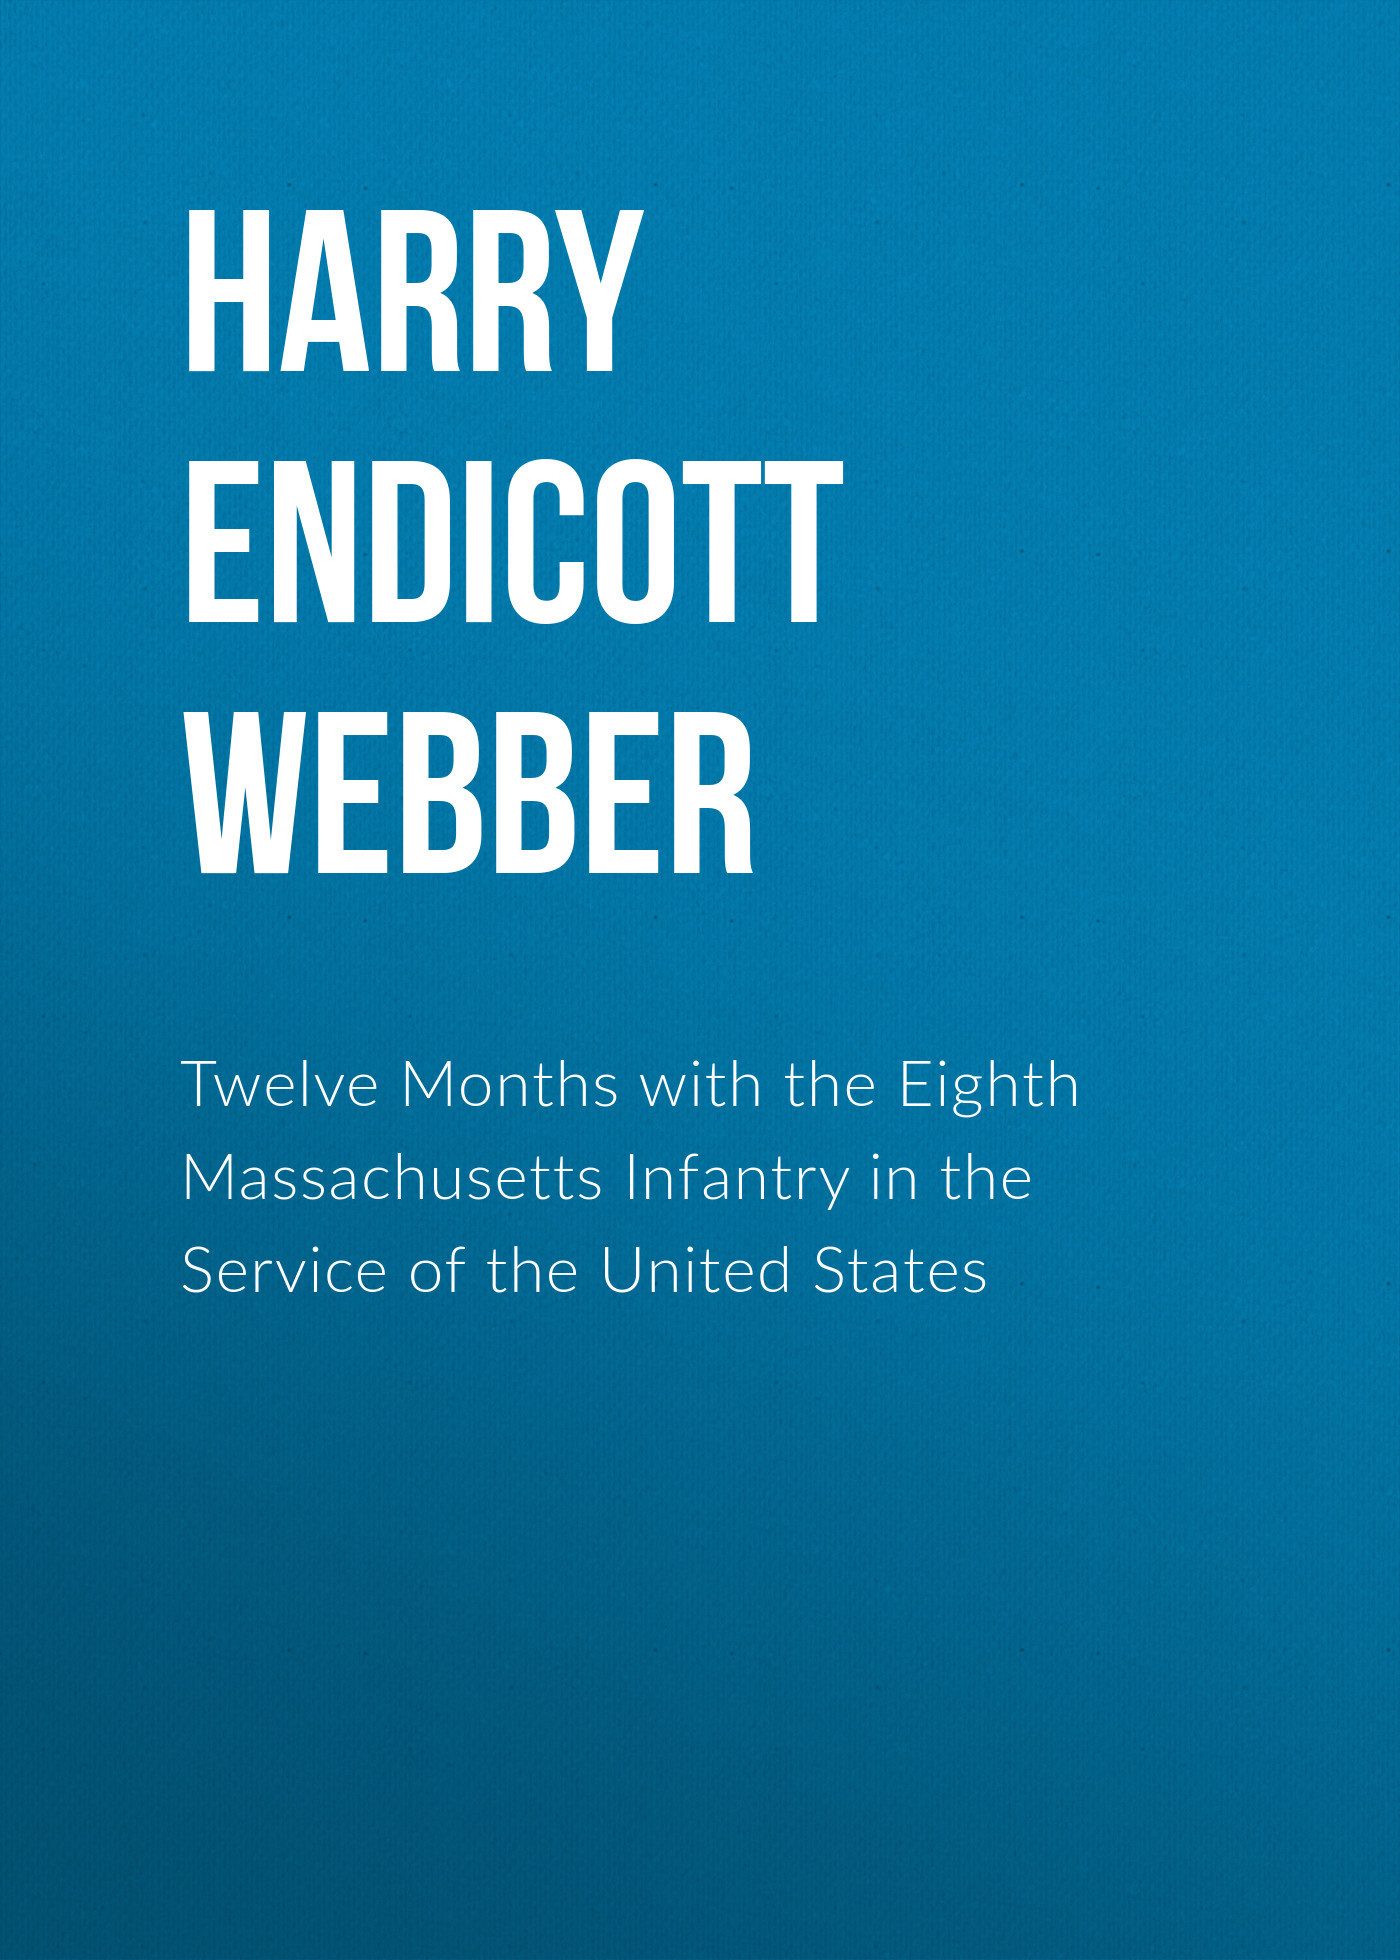 Harry Endicott Webber Twelve Months with the Eighth Massachusetts Infantry in the Service of the United States harry potter ollivanders dumbledore the elder wand in box prop replica